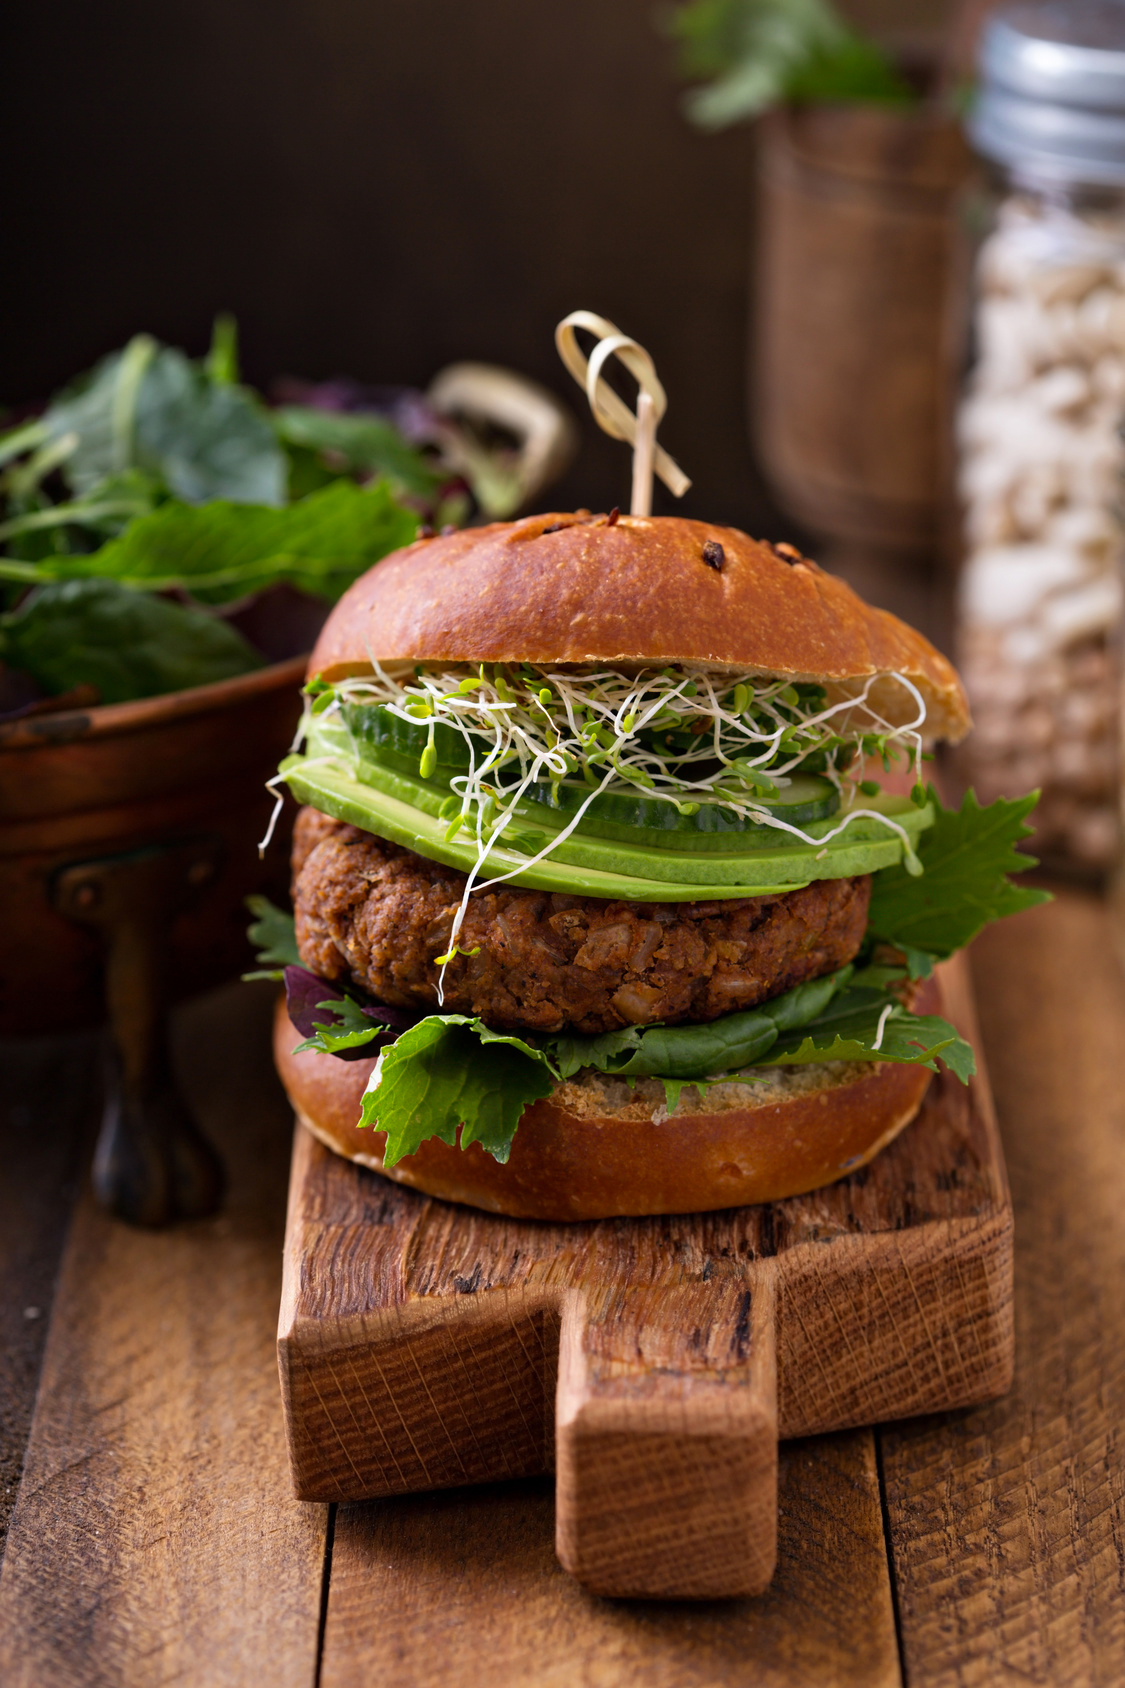 Ground beef burgers with aubergine and avocado sauce